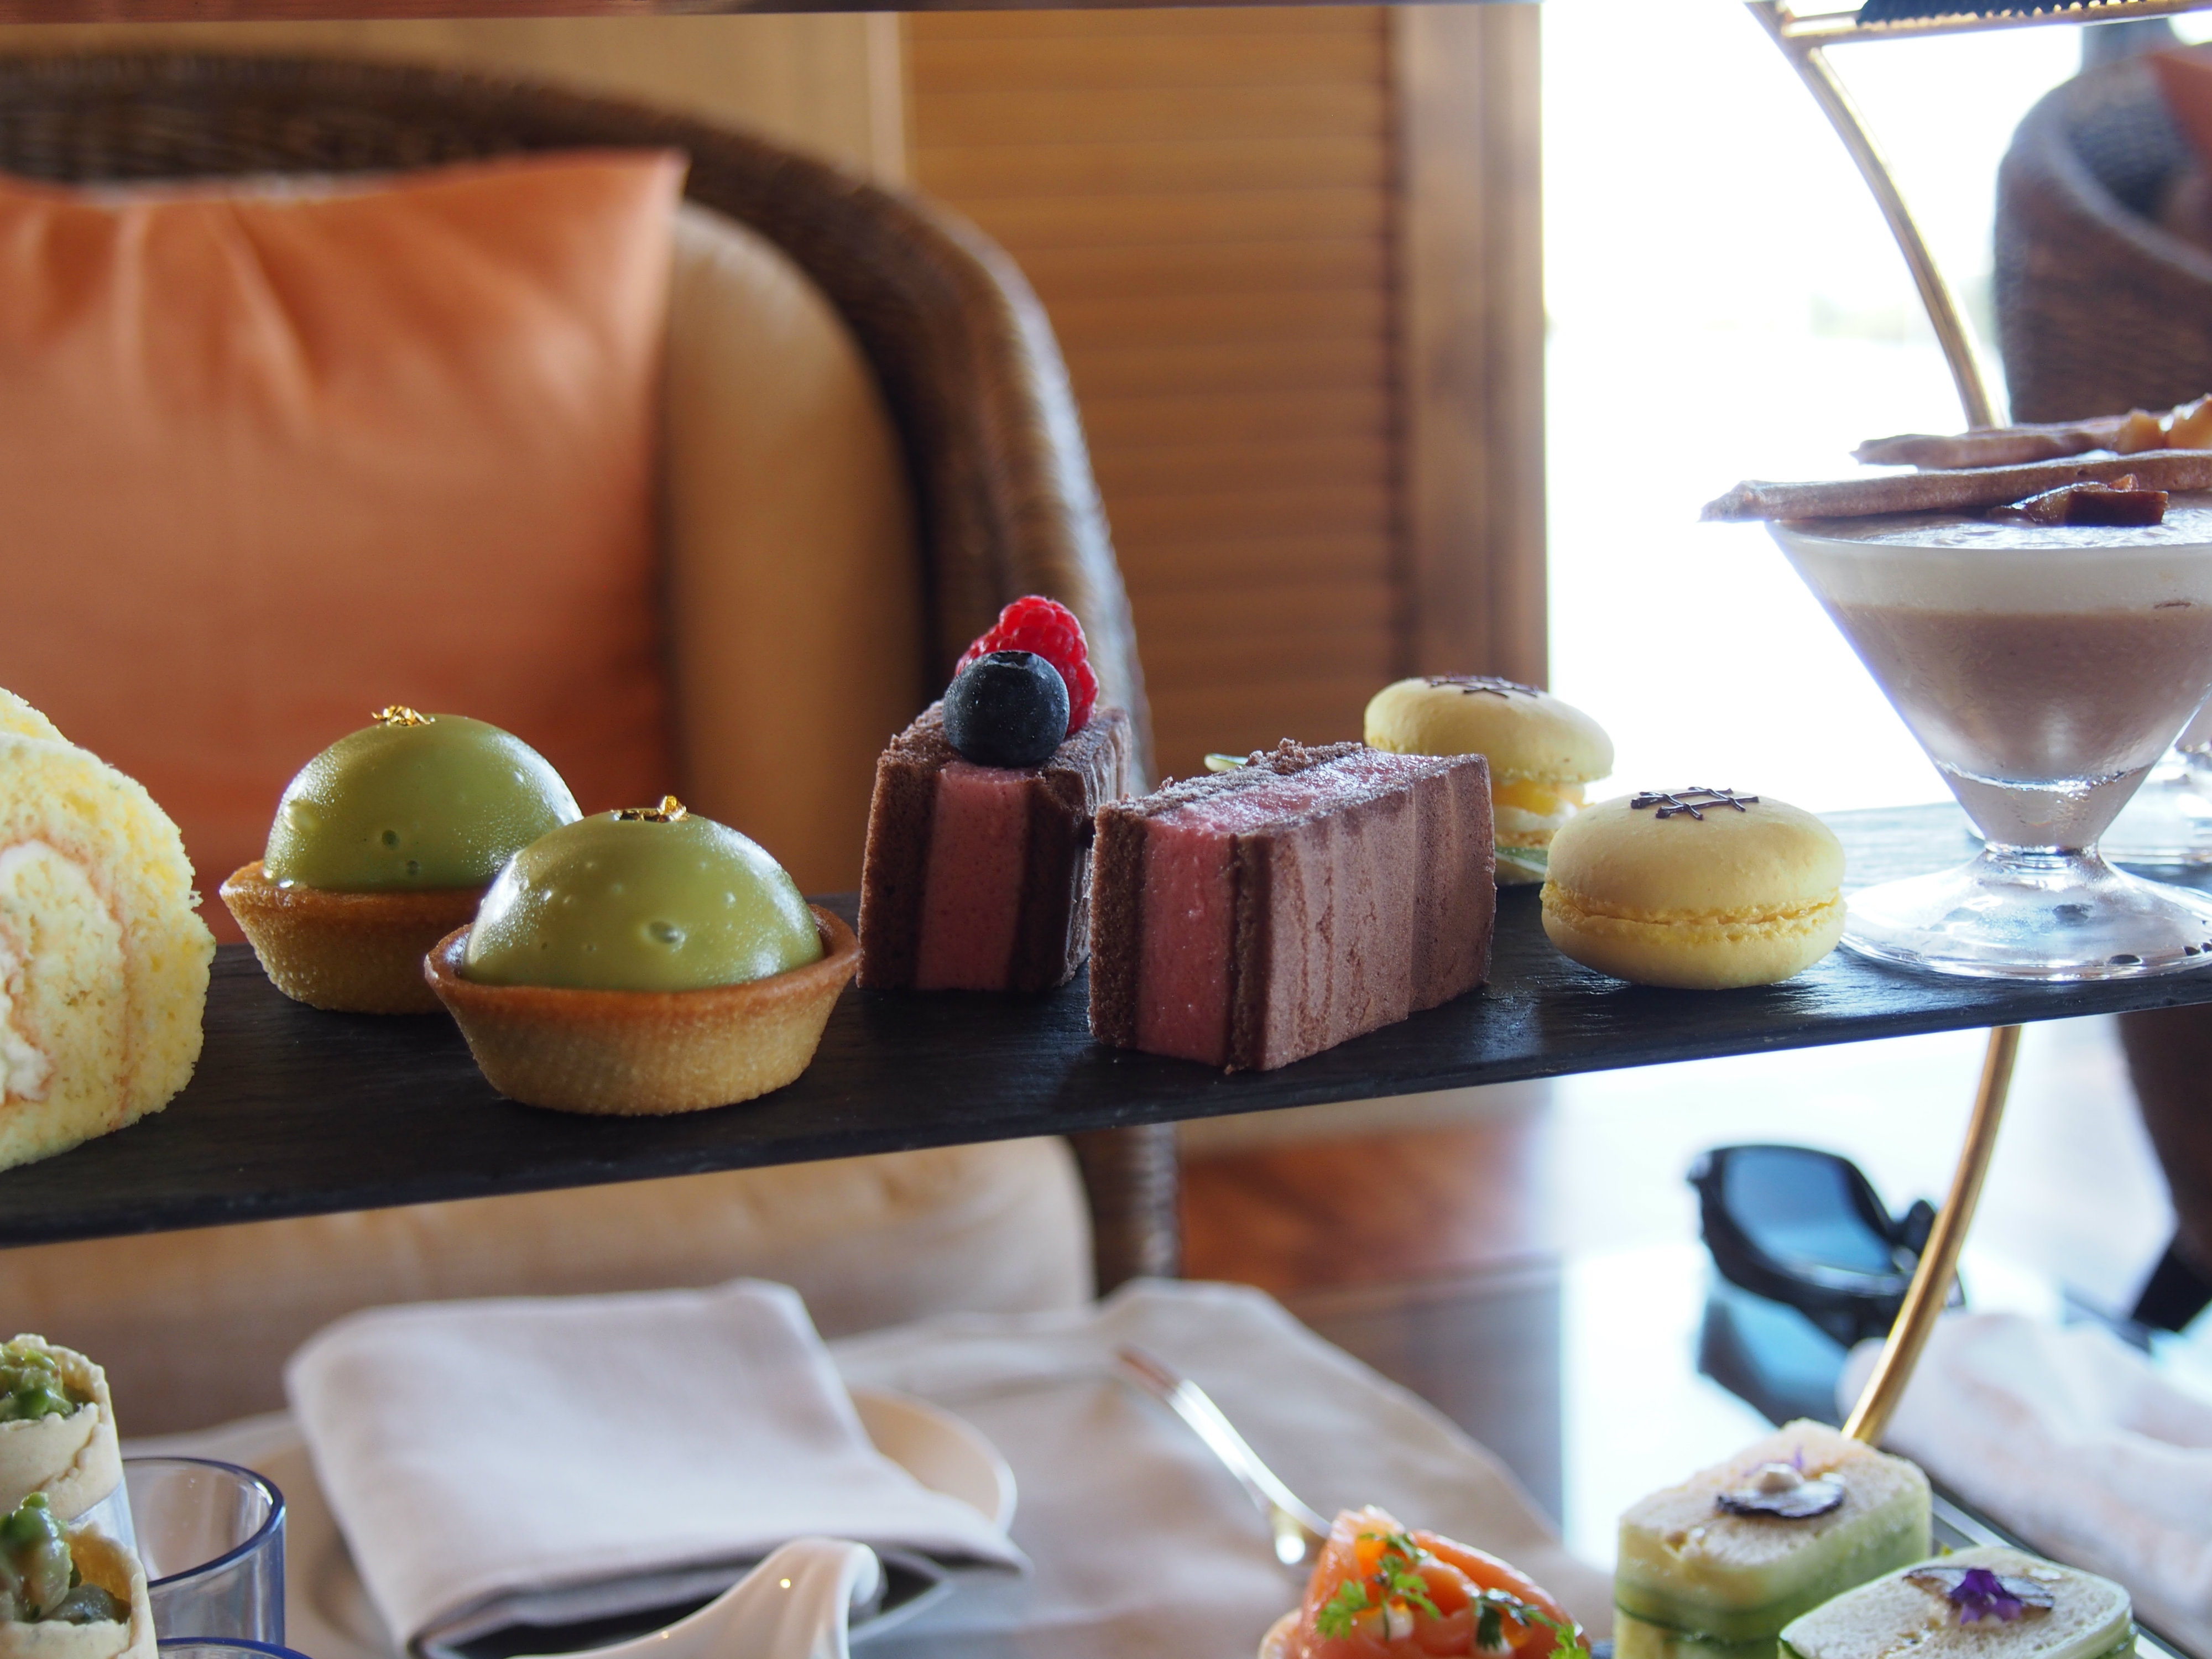 ritz-carlton okinawa afternoon tea